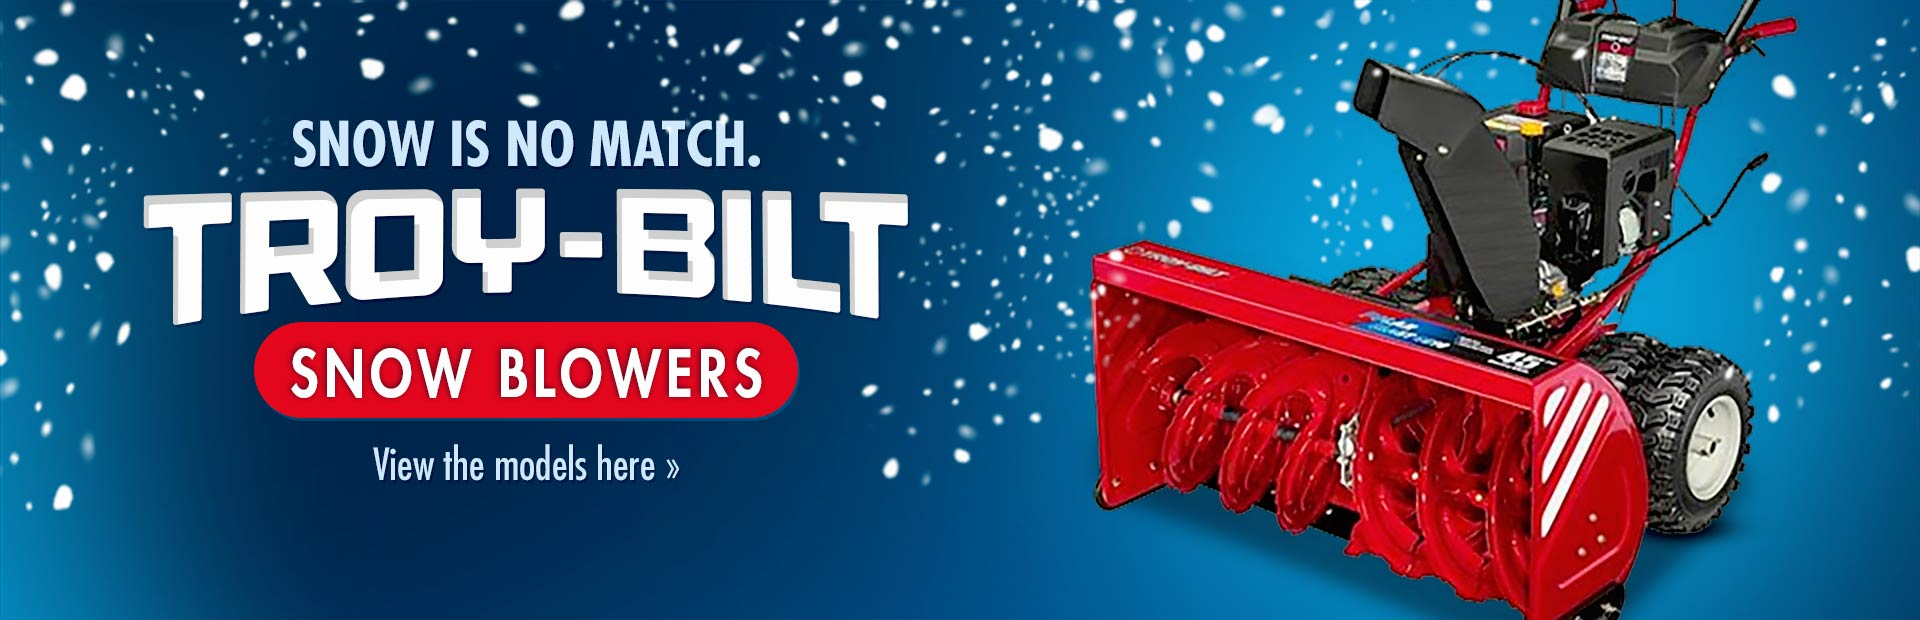 Troy-Bilt Snow Blowers: Click here to view the models.